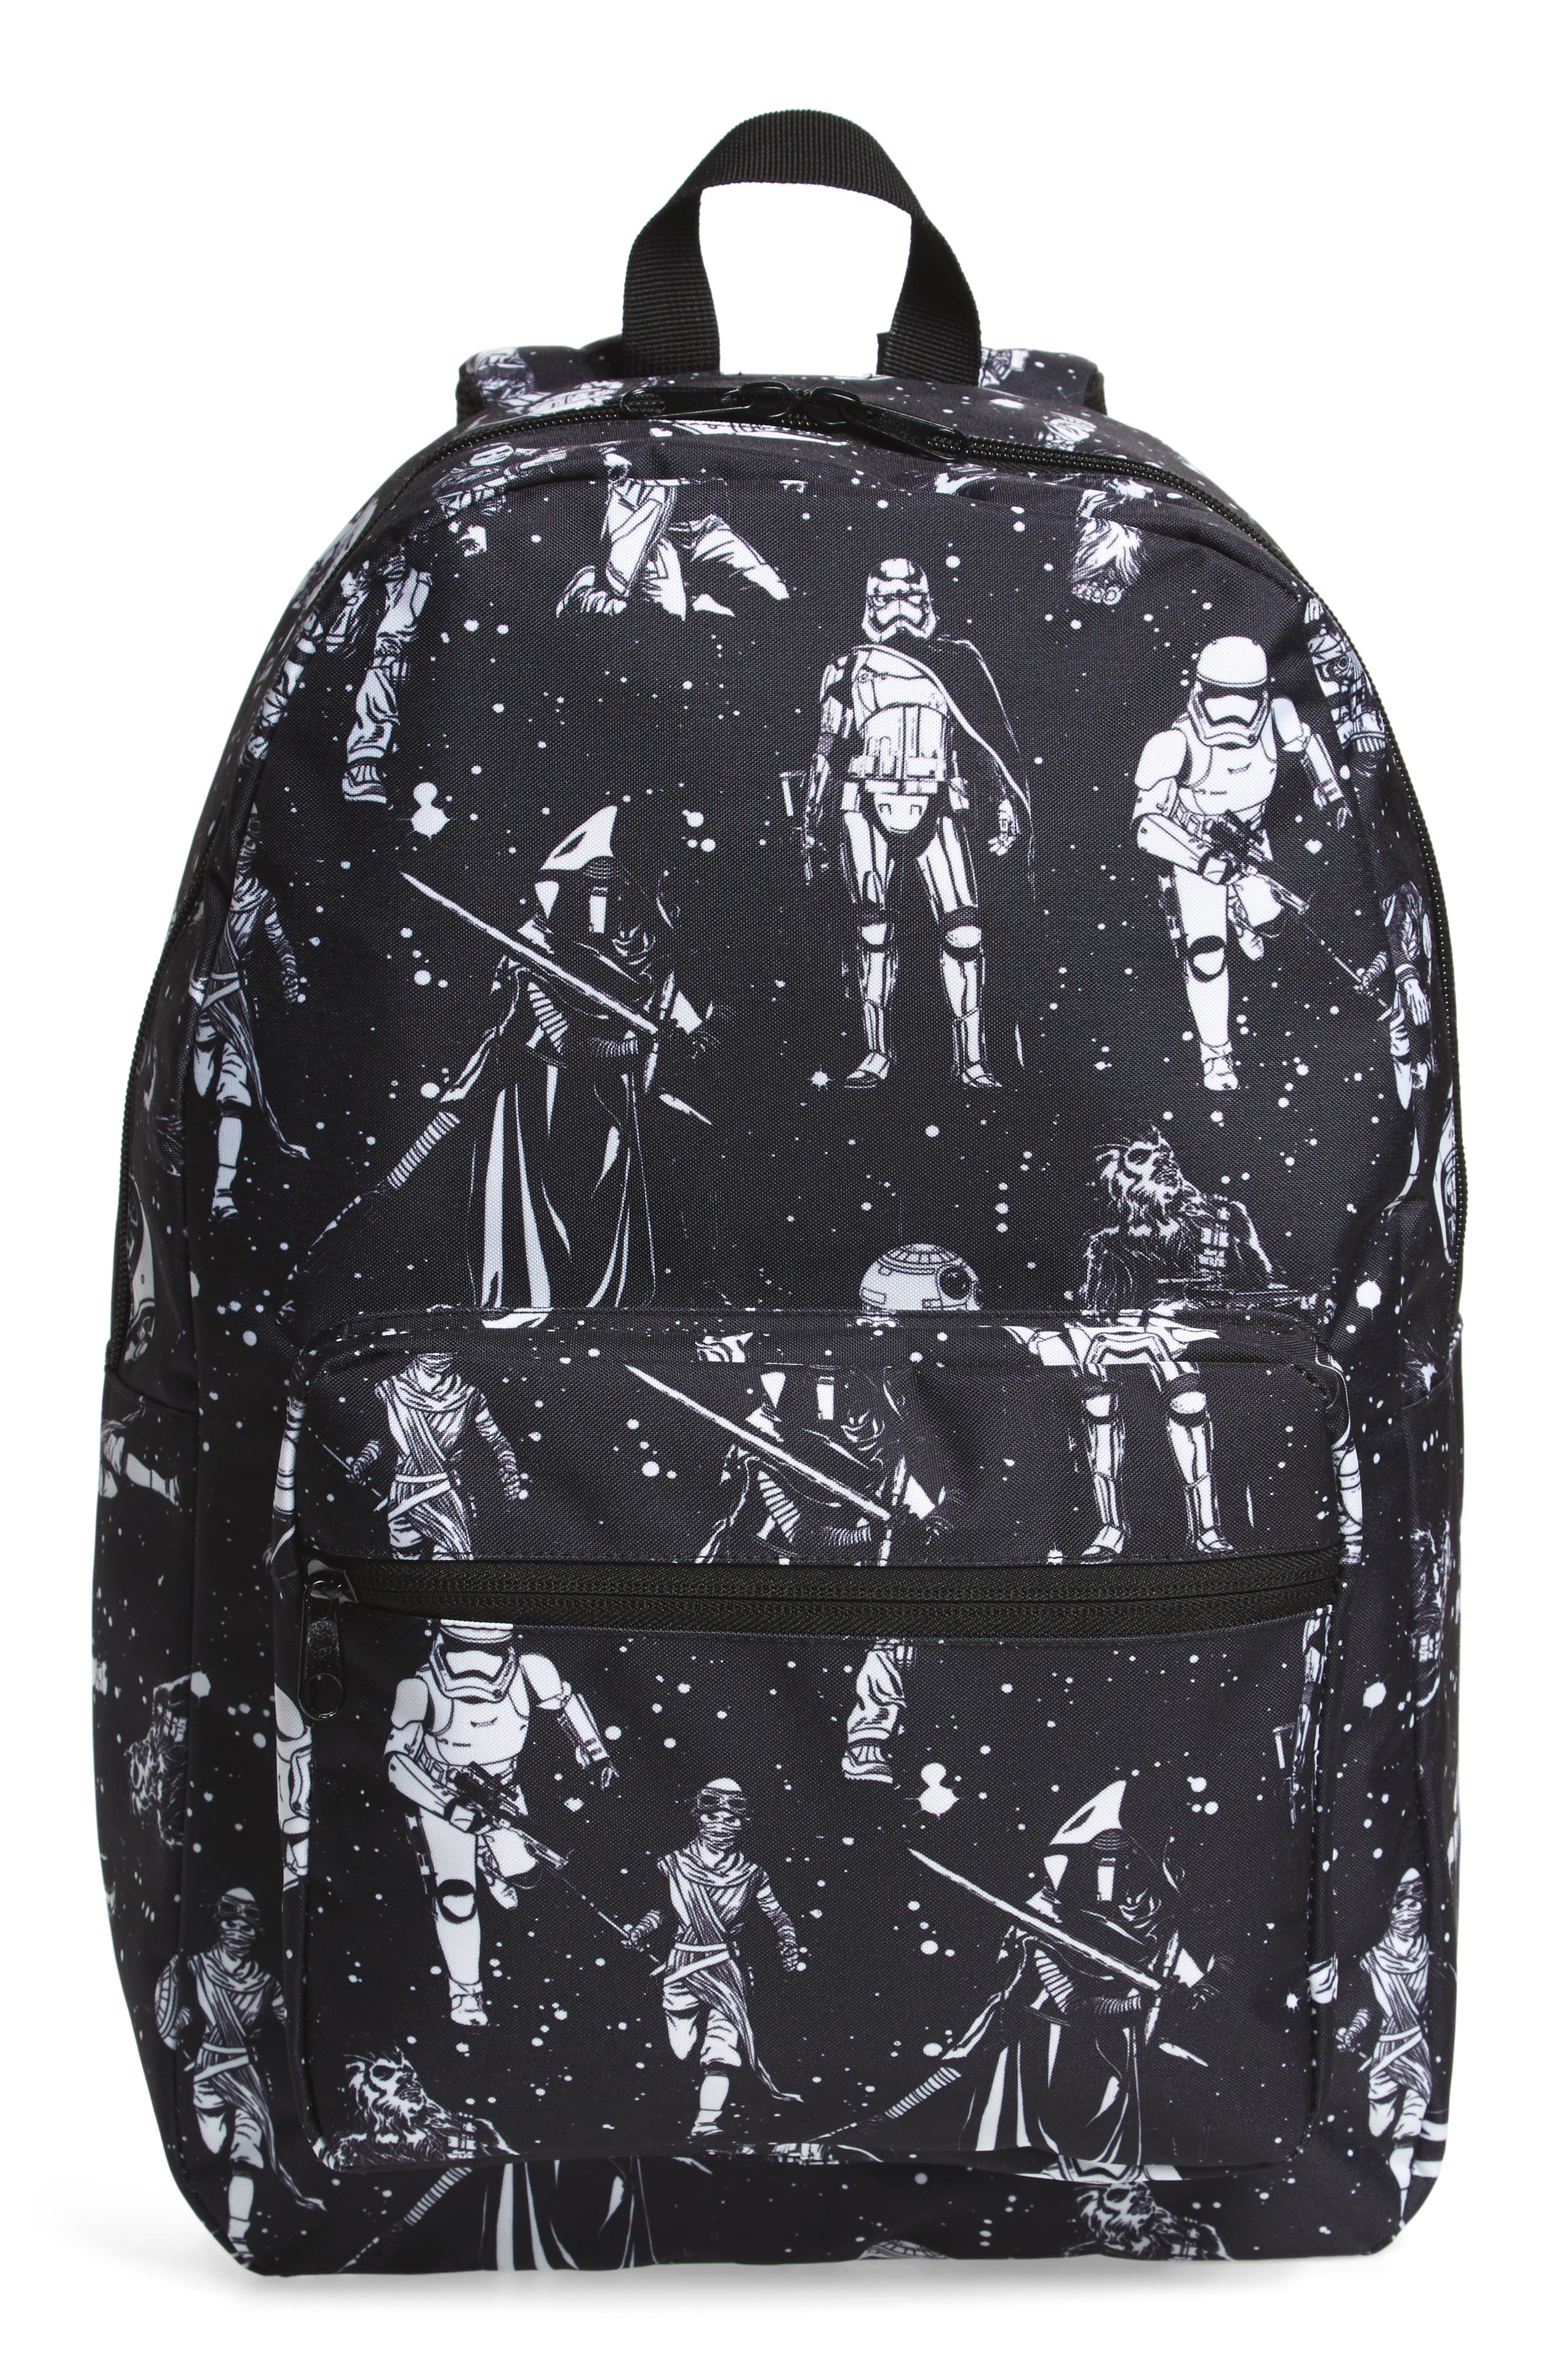 Alternate Image 1 Selected - Star Wars The Force Awakens Black & White Space Backpack (Kids)